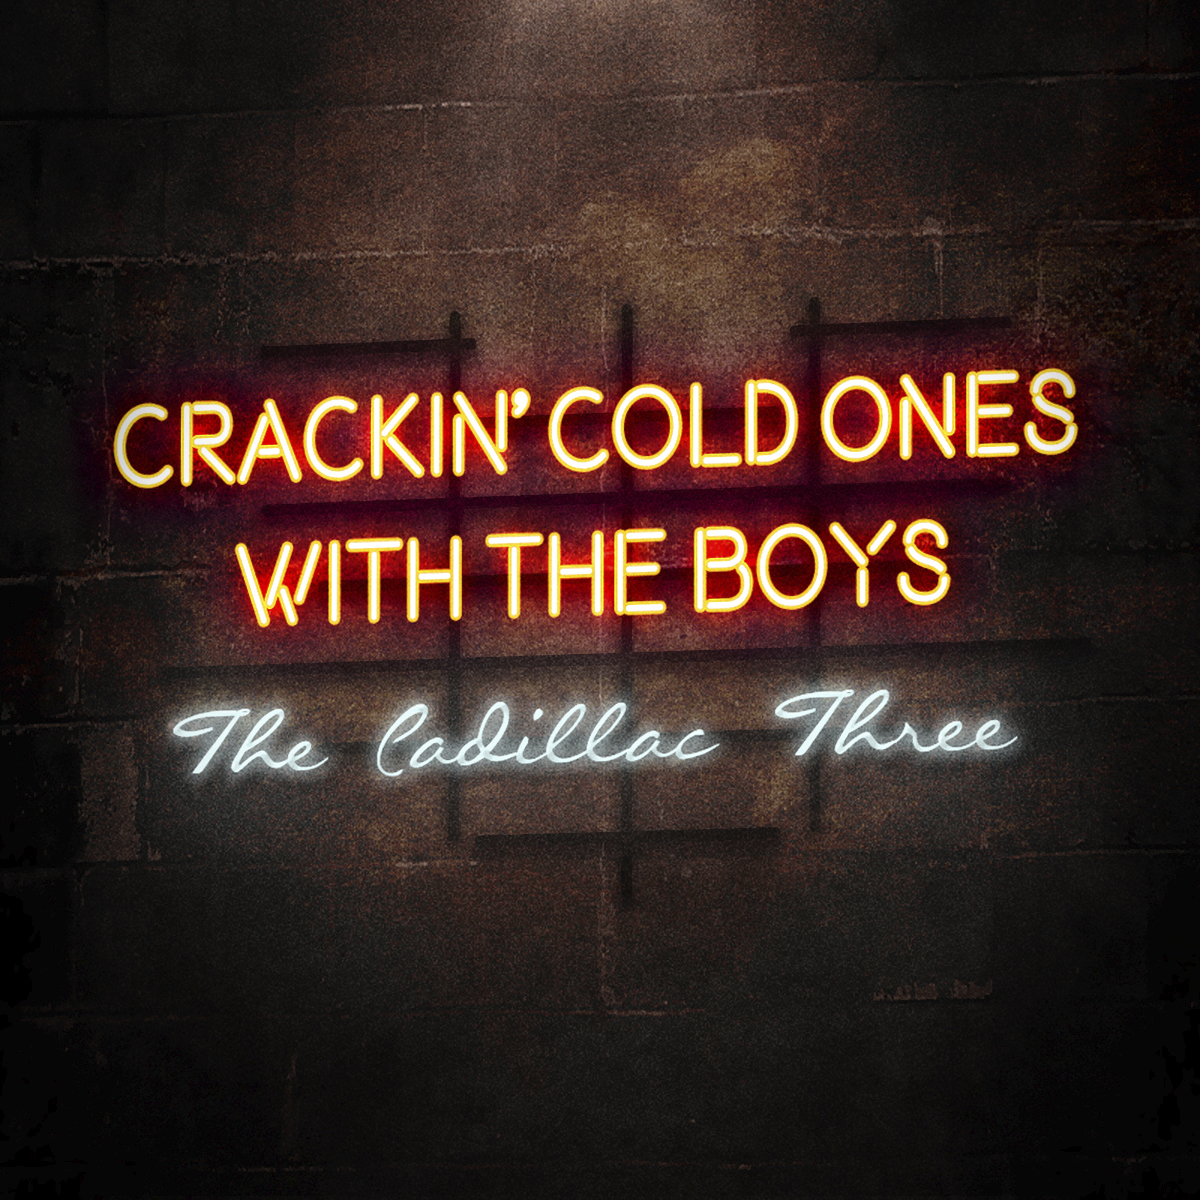 """Cheers, Beers & Hallelujah: The Cadillac Three Are """"Crackin' Cold Ones With The Boys"""